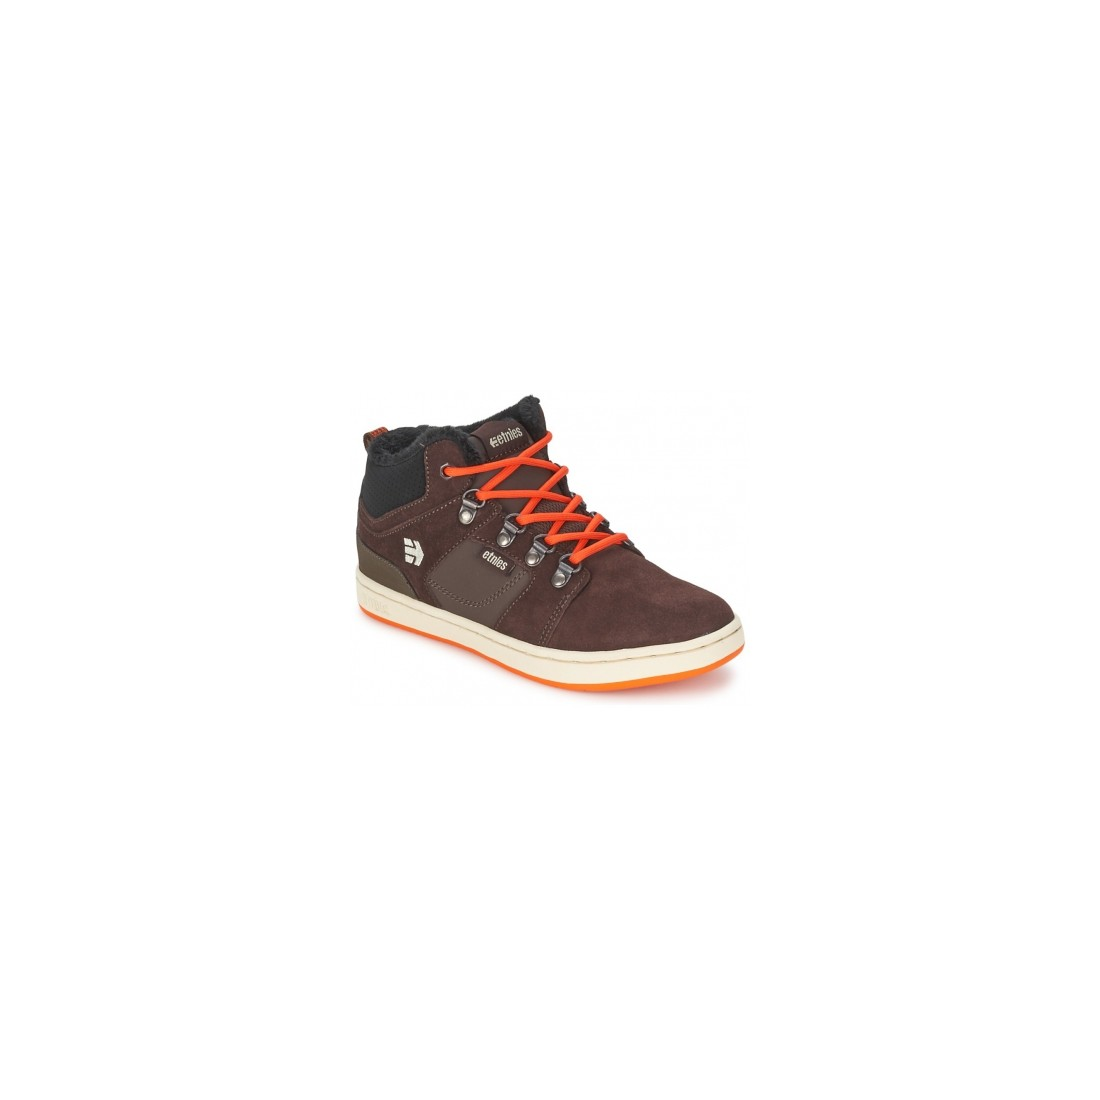 HIGH RISE kids dark brown